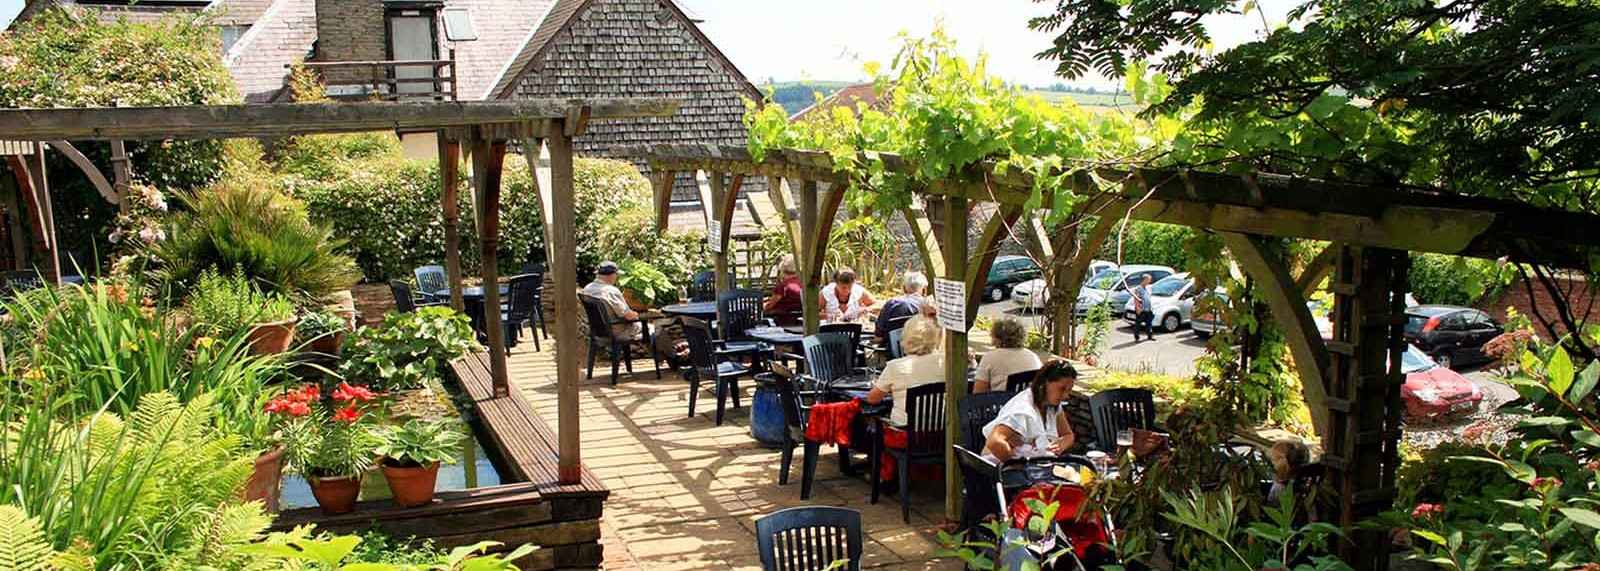 The Castle Hotel in Shropshire Garden Lunch